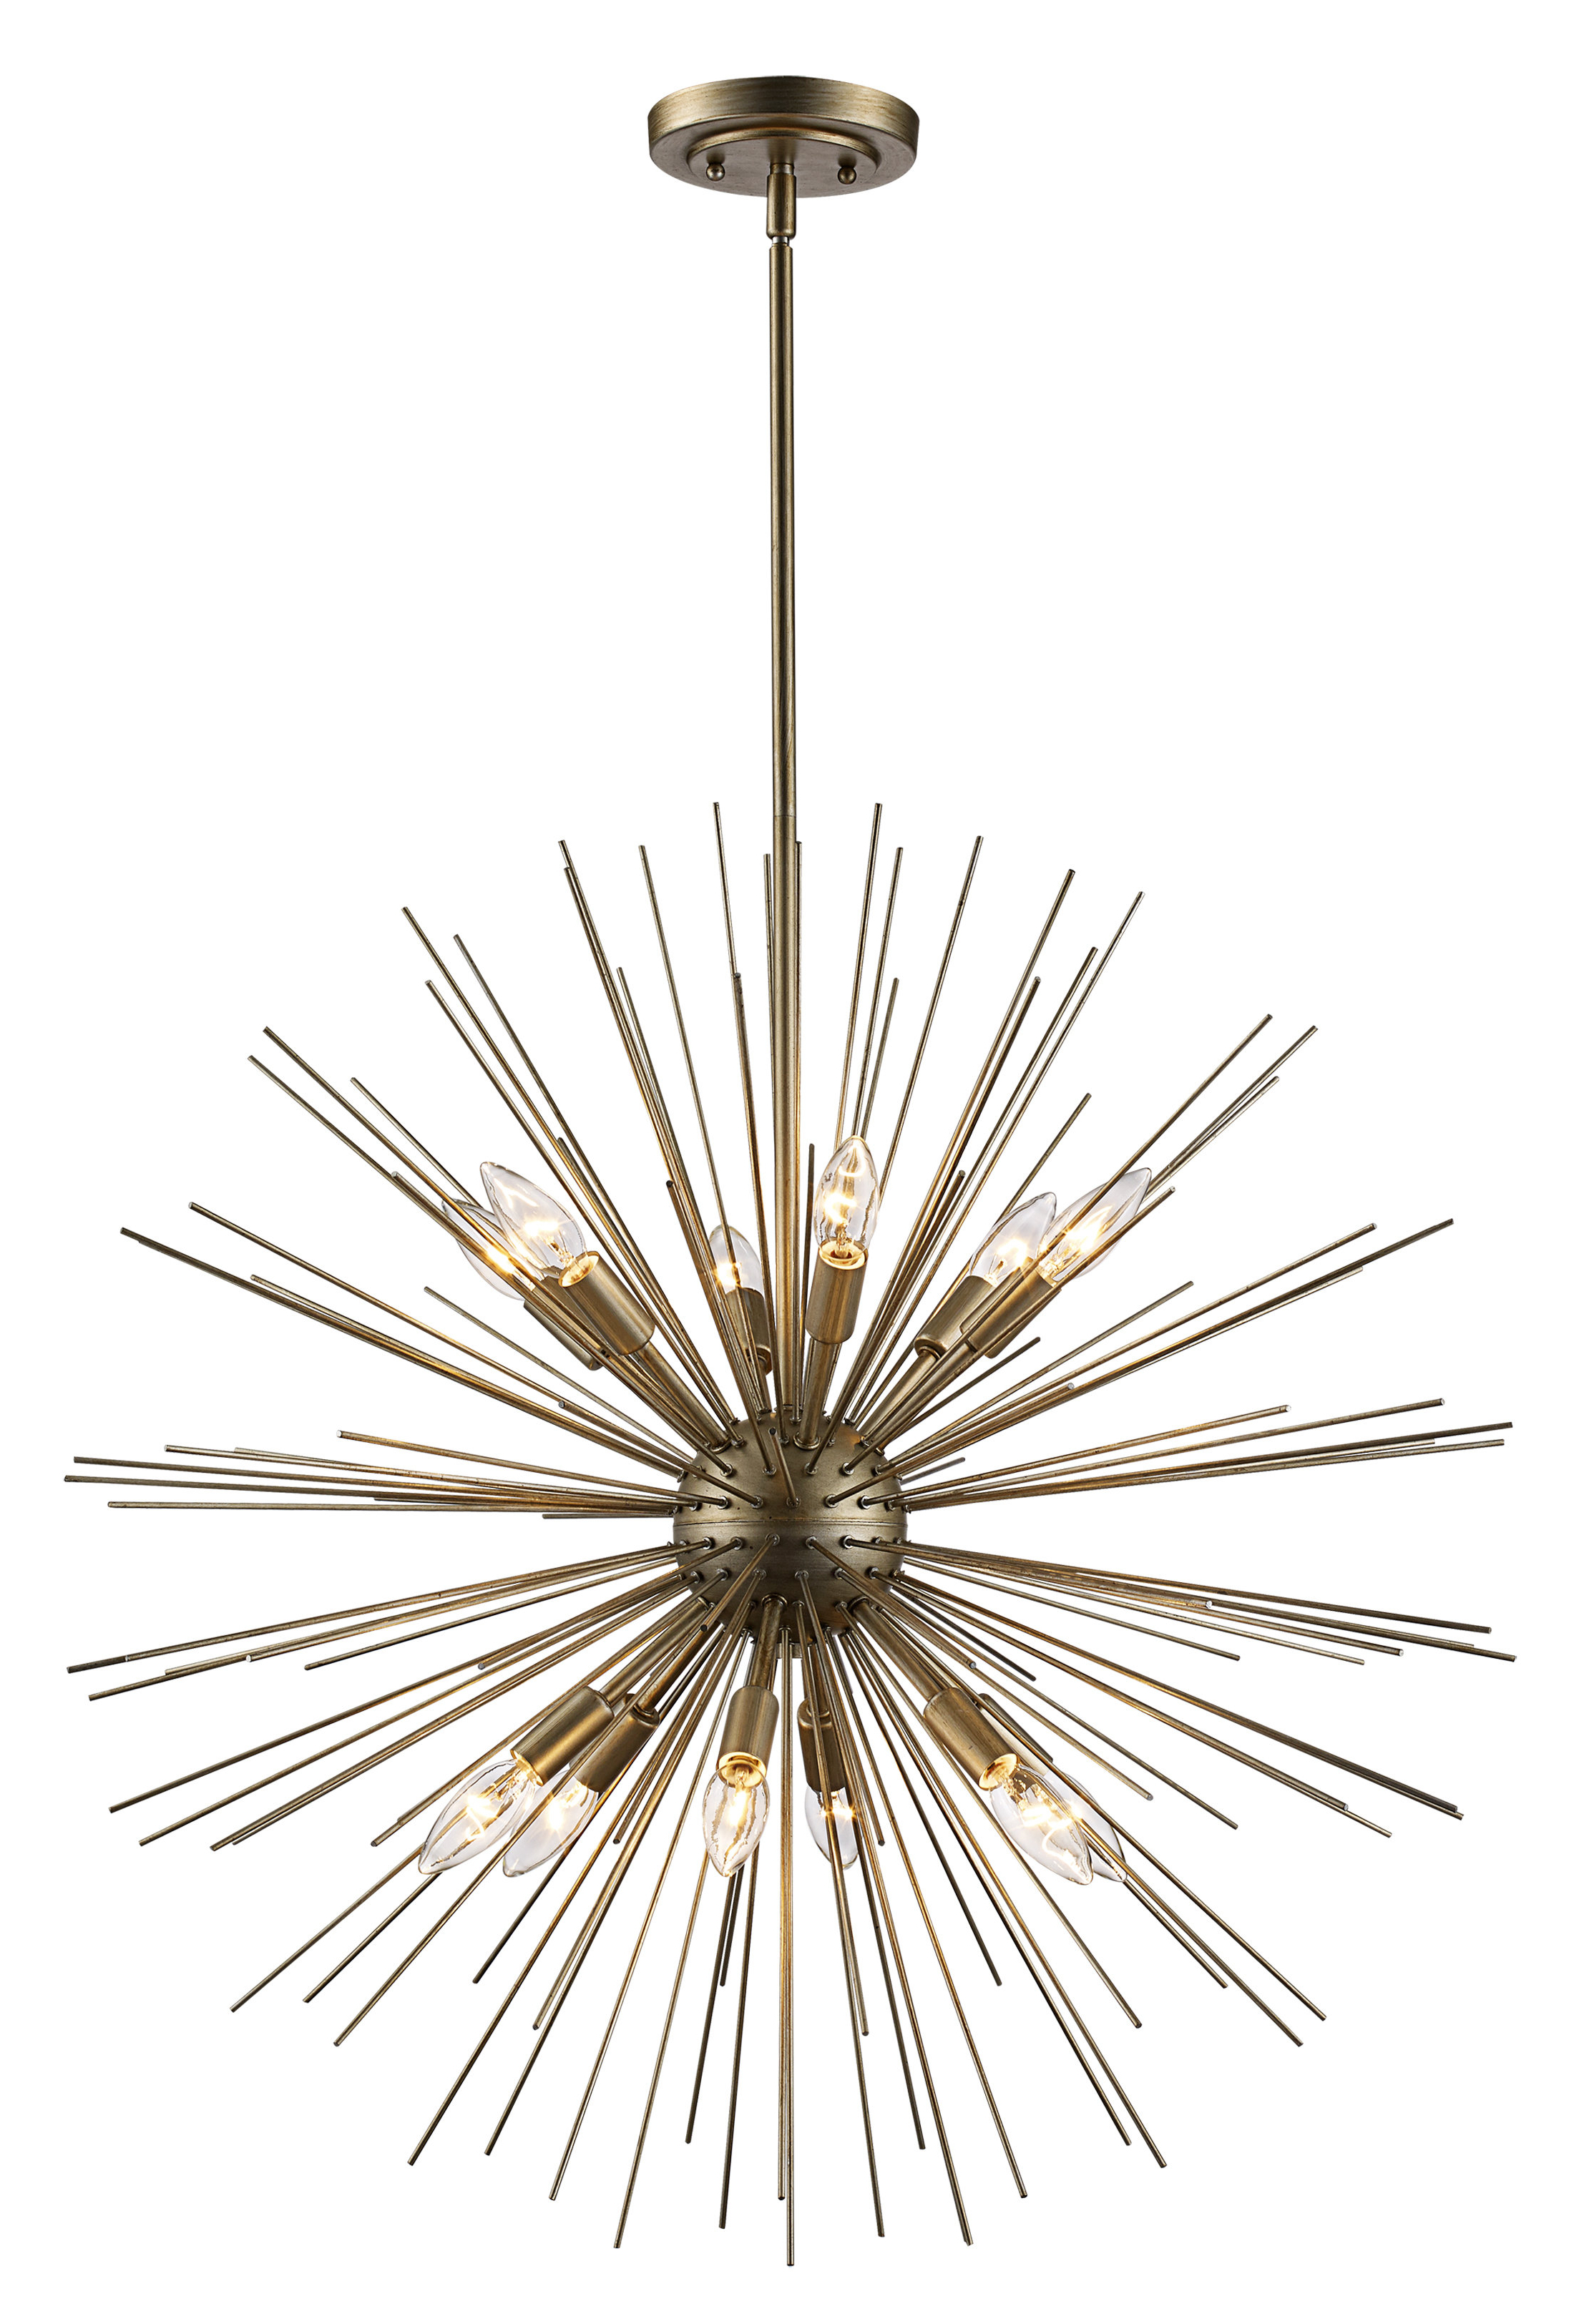 Most Recent Antonie 12 Light Sputnik Chandelier Throughout Nelly 12 Light Sputnik Chandeliers (View 7 of 20)